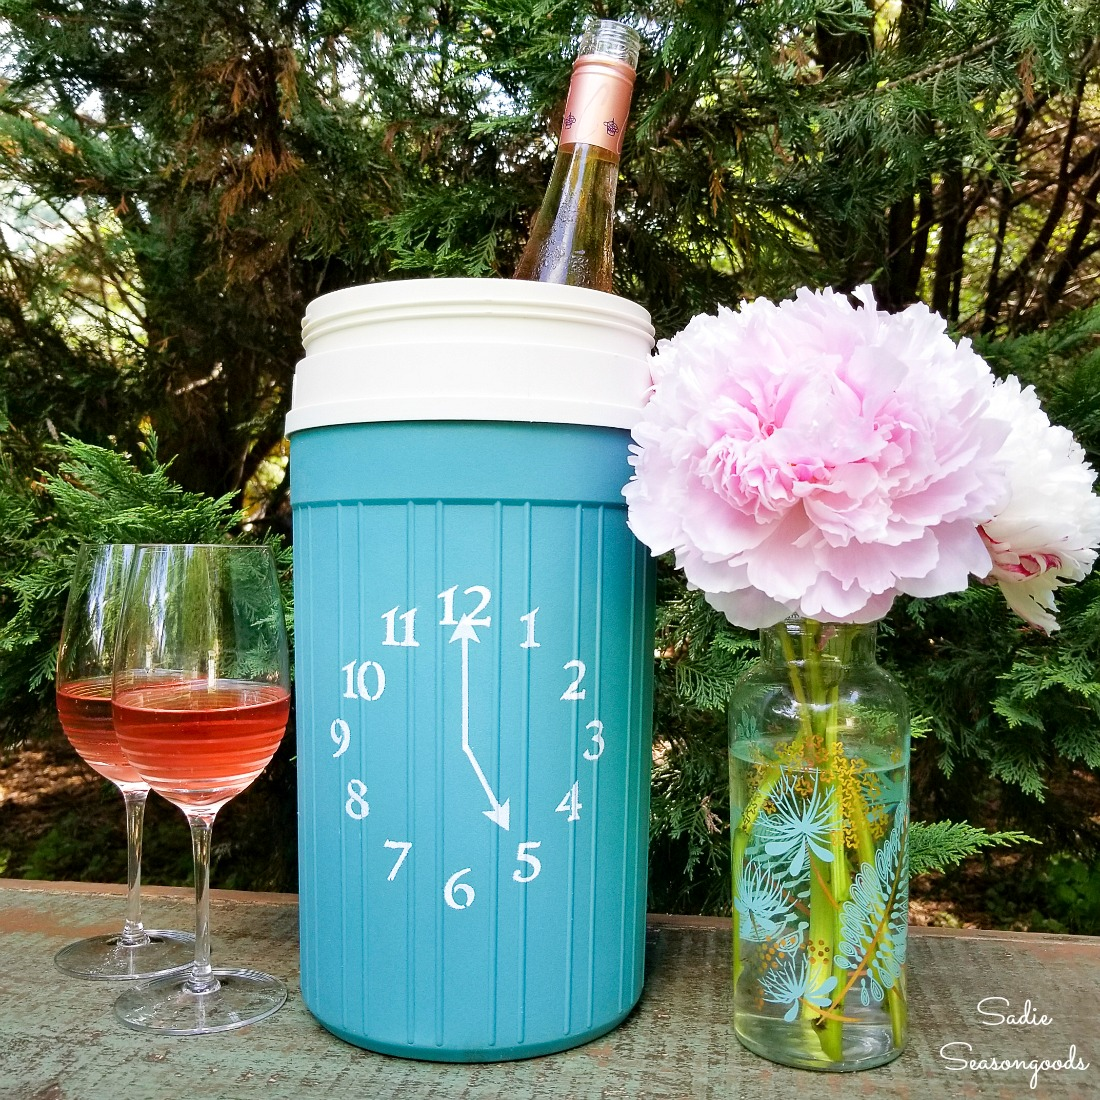 DIY Wine Bottle Cooler for Happy Hour at Home